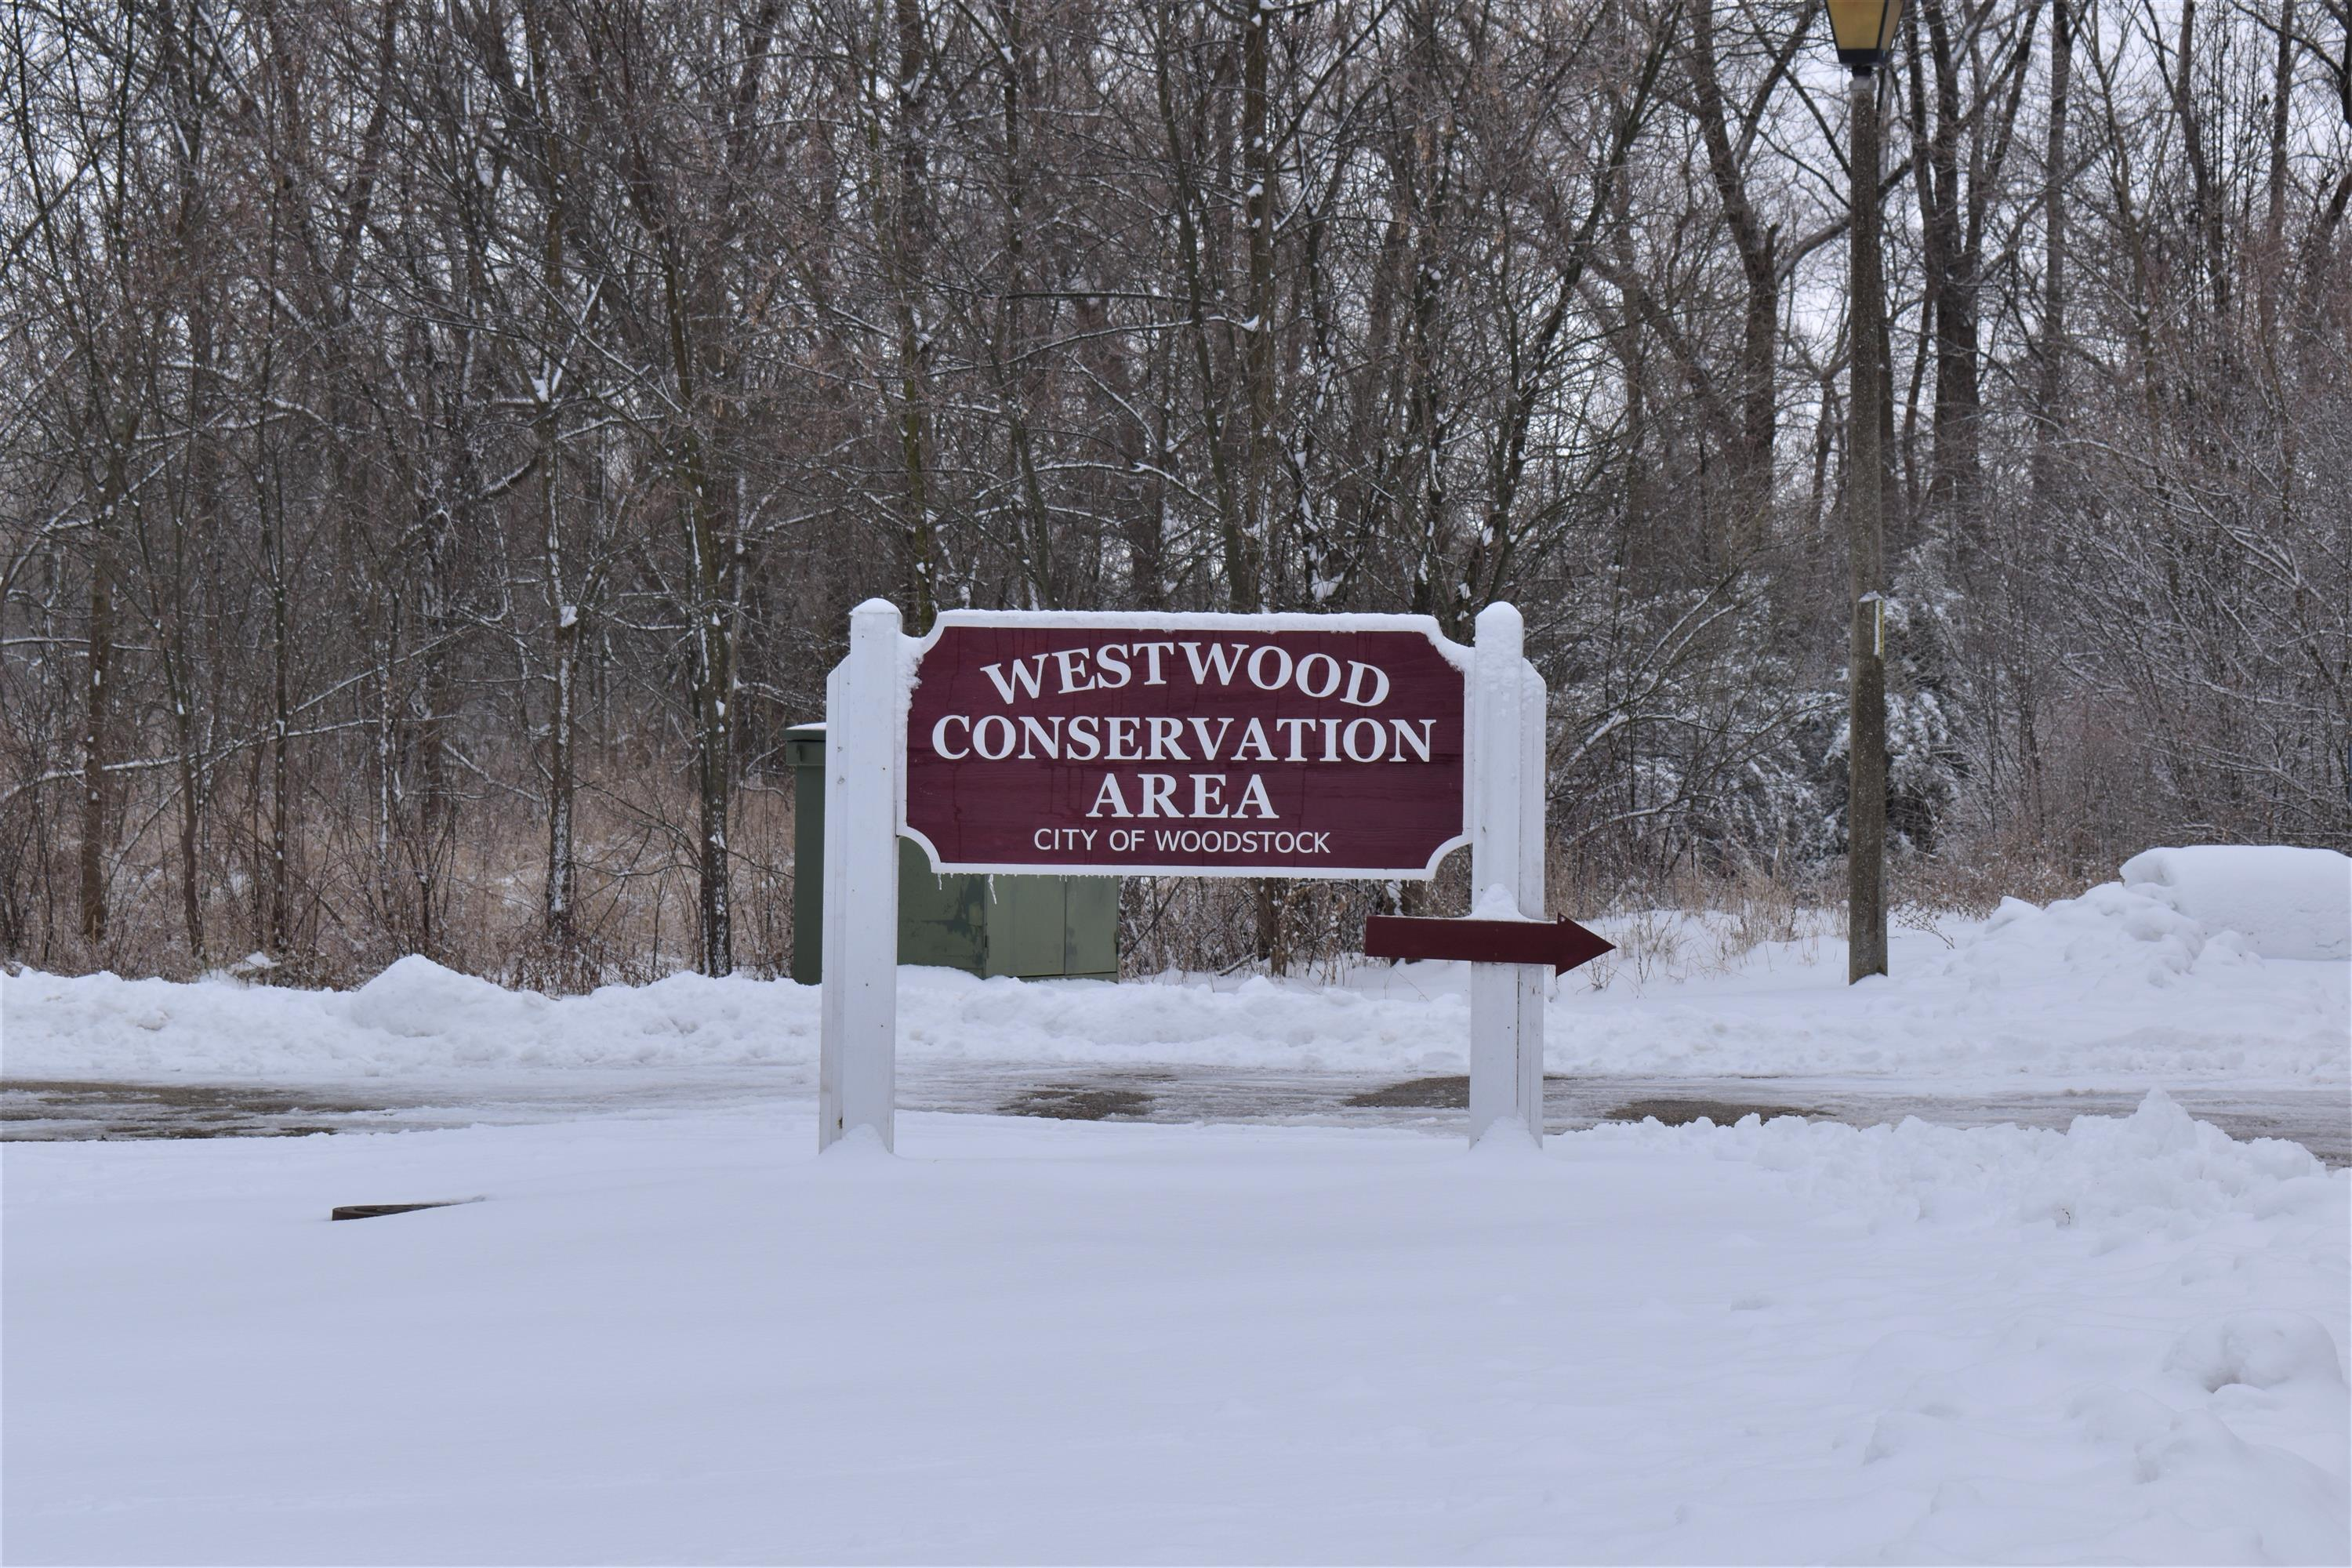 Westwood Conservation Area